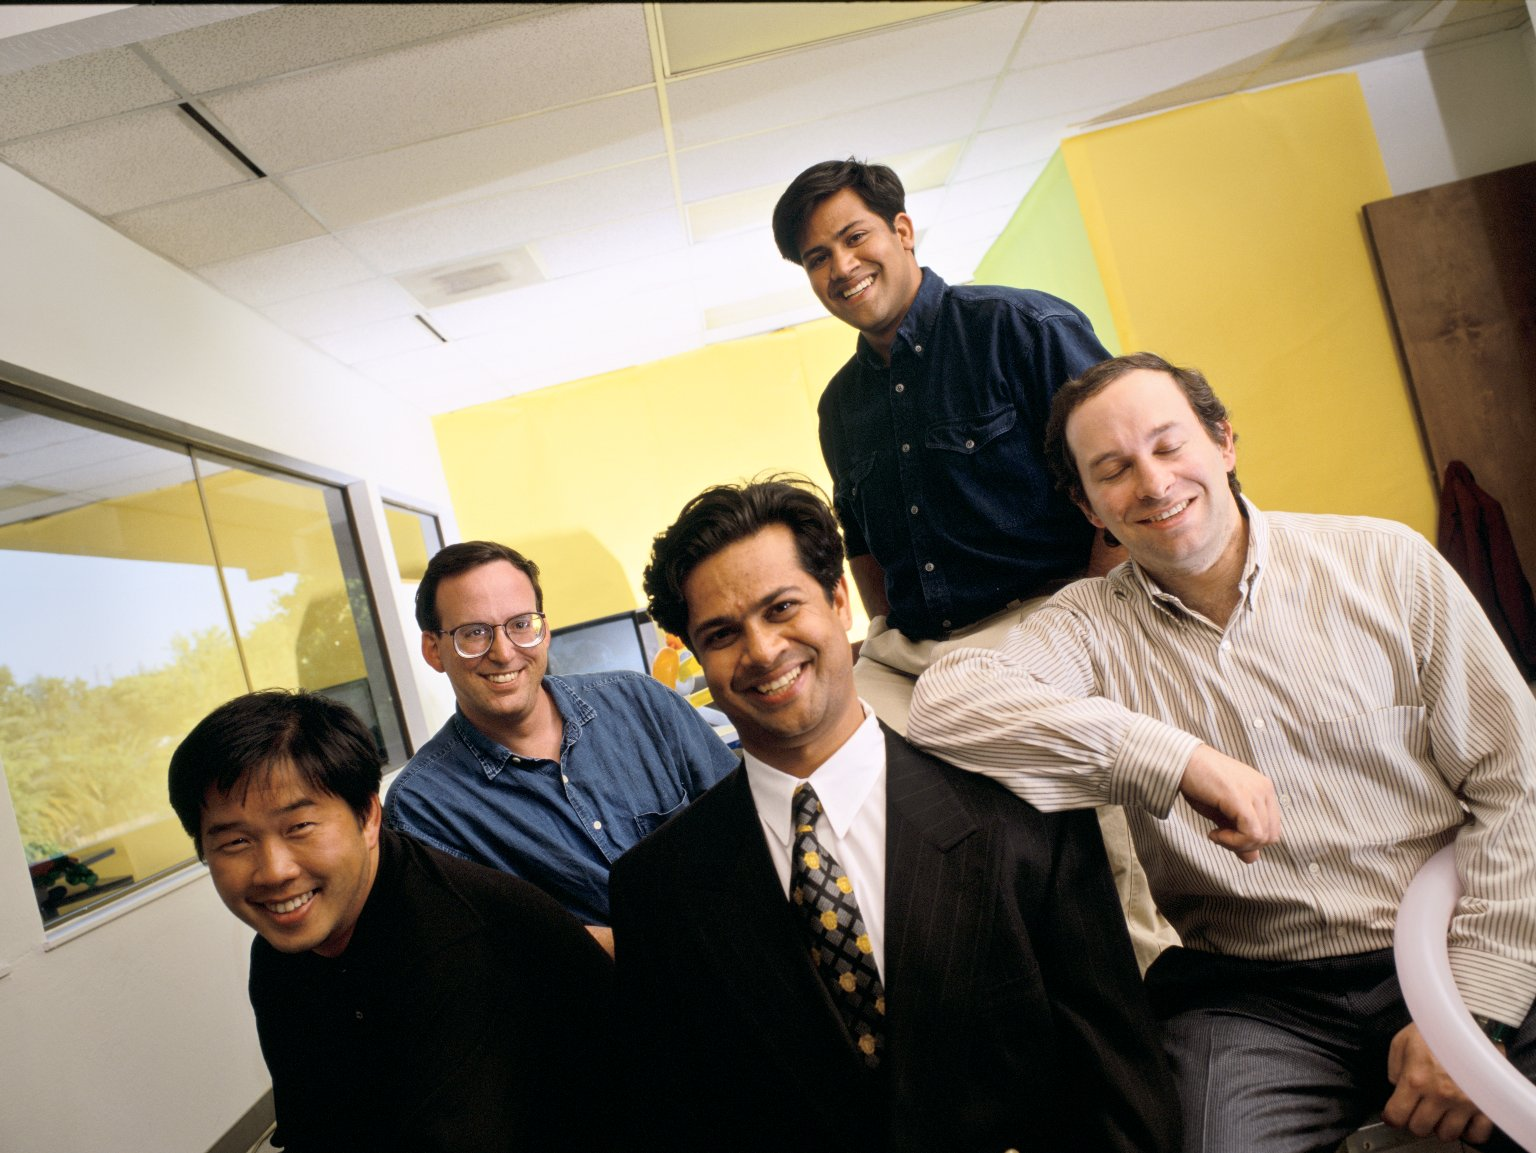 The co-founders of NetObjects (left to right in front row): Clement Mok, Samir Arora and David Kleinberg, along with Tom Melcher (seated in second row), vice president of business development, and Sal Arora (standing), vice president of product development.